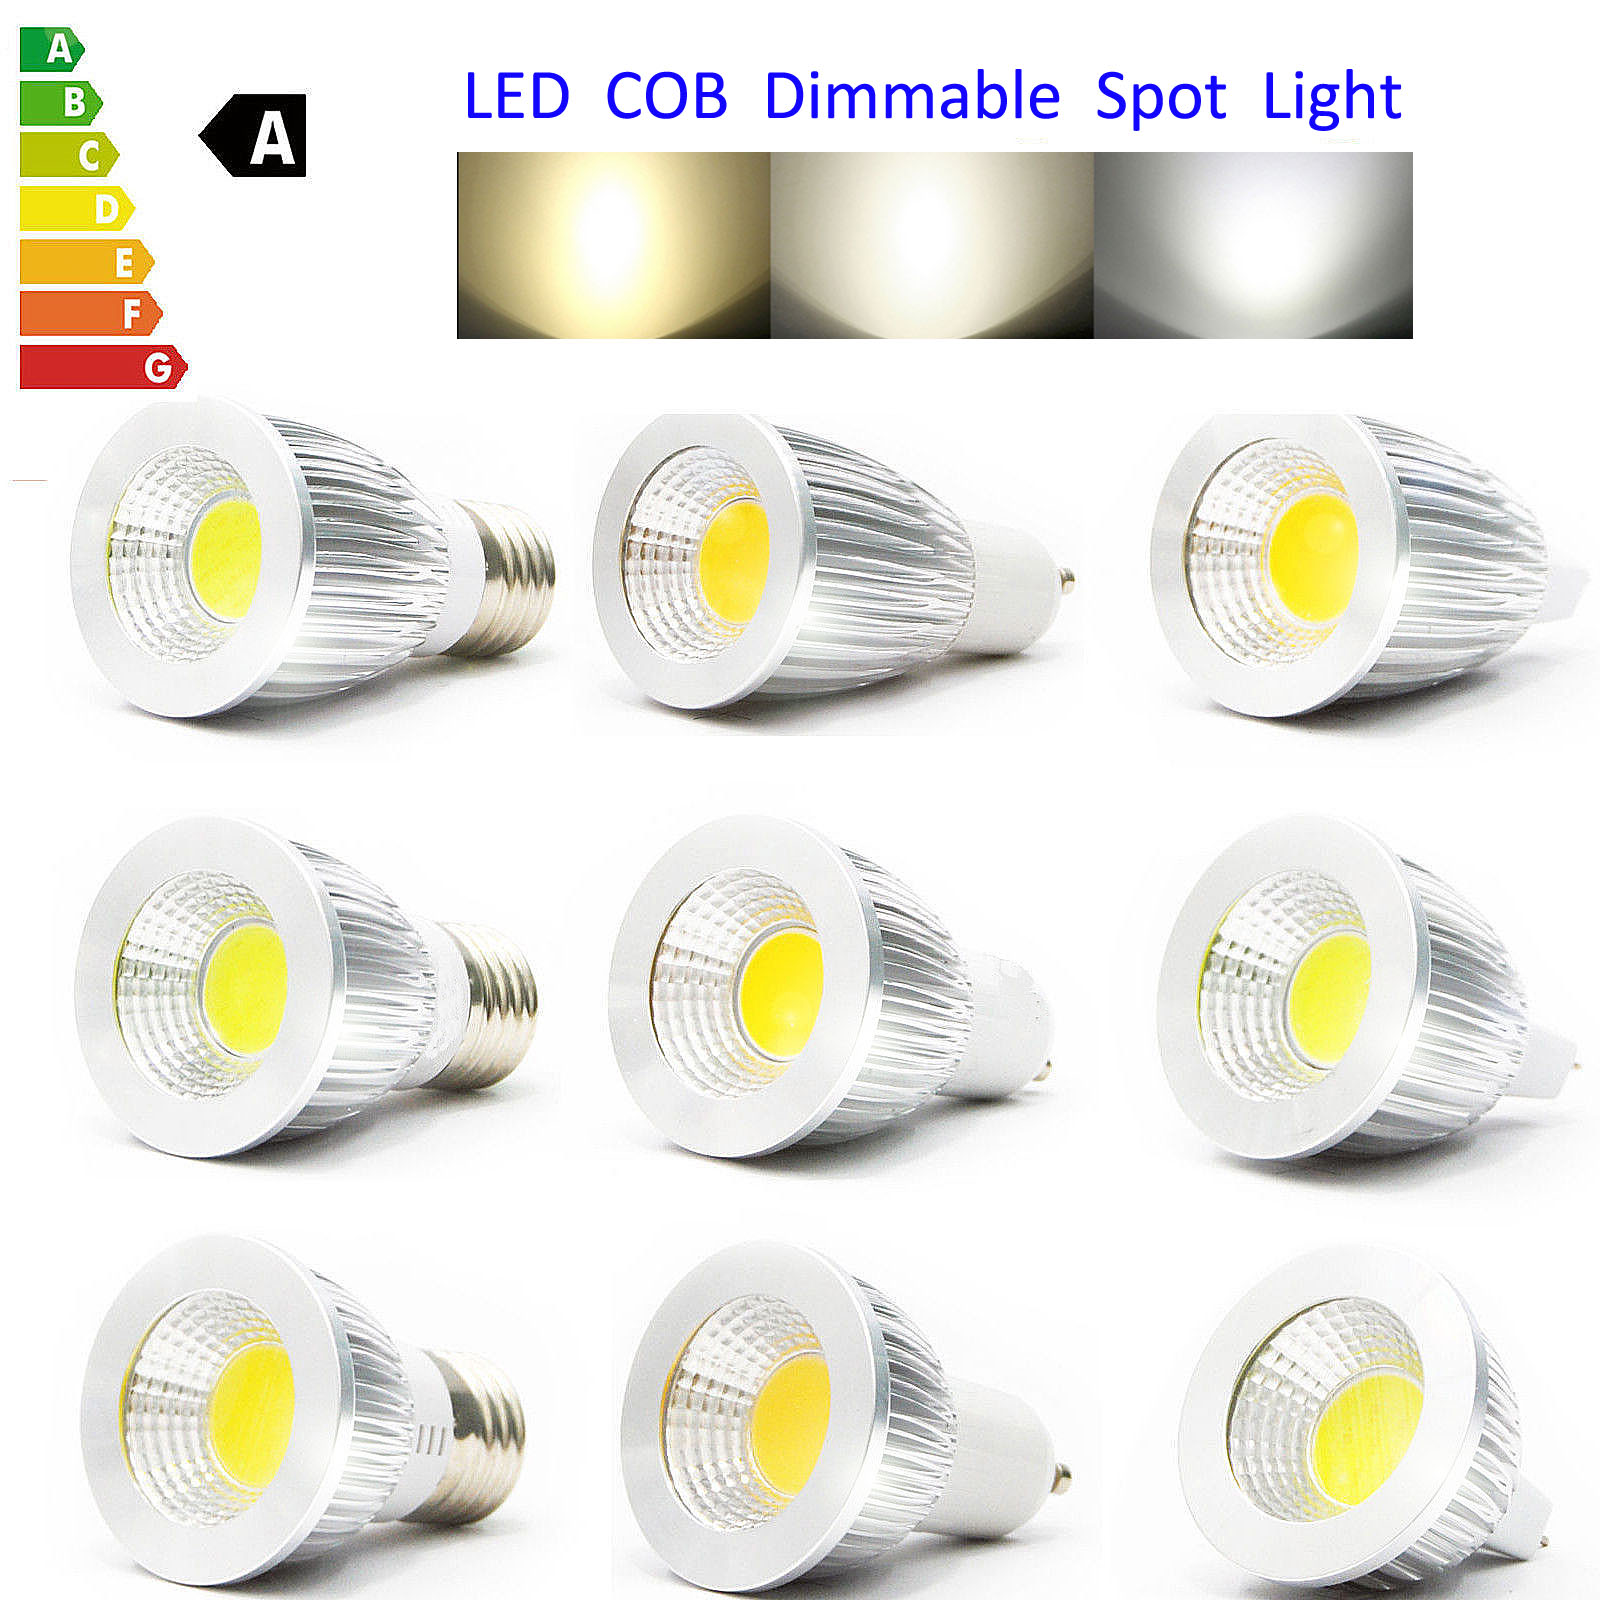 mr16 gu10 e27 6w 9w 12w dimmable led cob spotlight bulb lamp cool warm white ebay. Black Bedroom Furniture Sets. Home Design Ideas